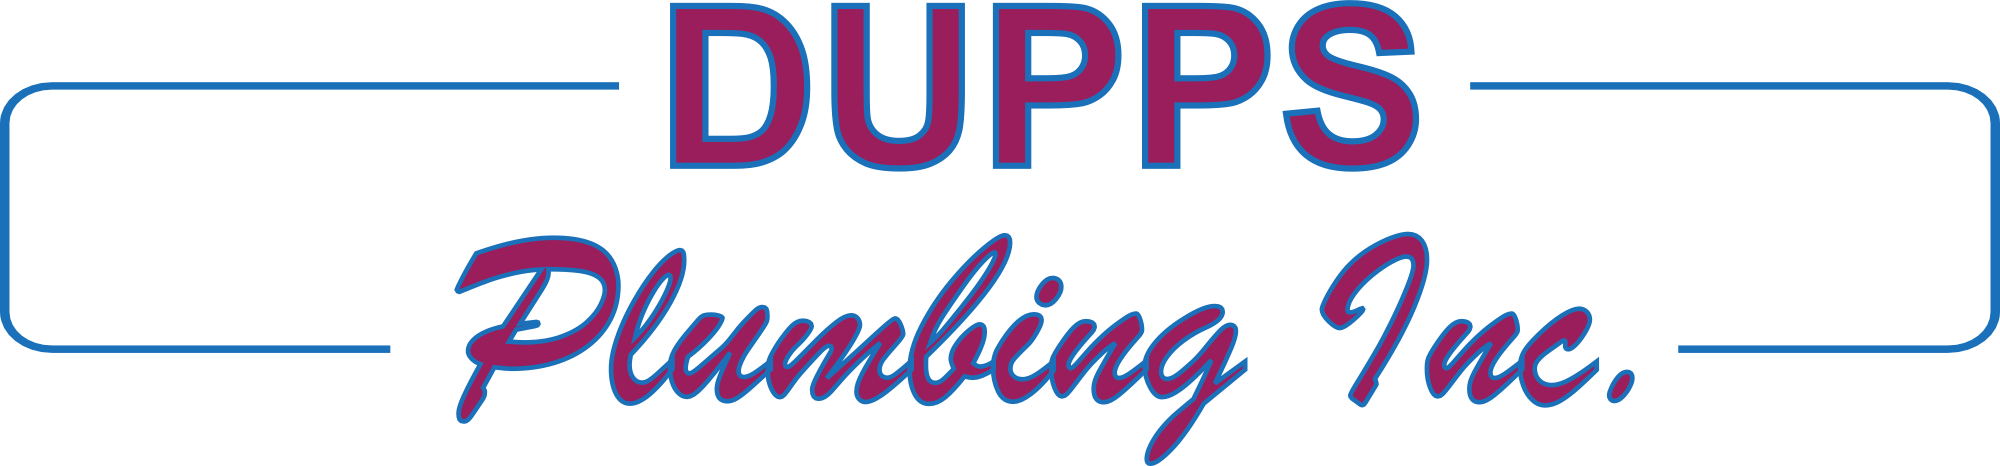 Dupps Plumbing - Mason - Indian Hill - West Chester - Cincinnati